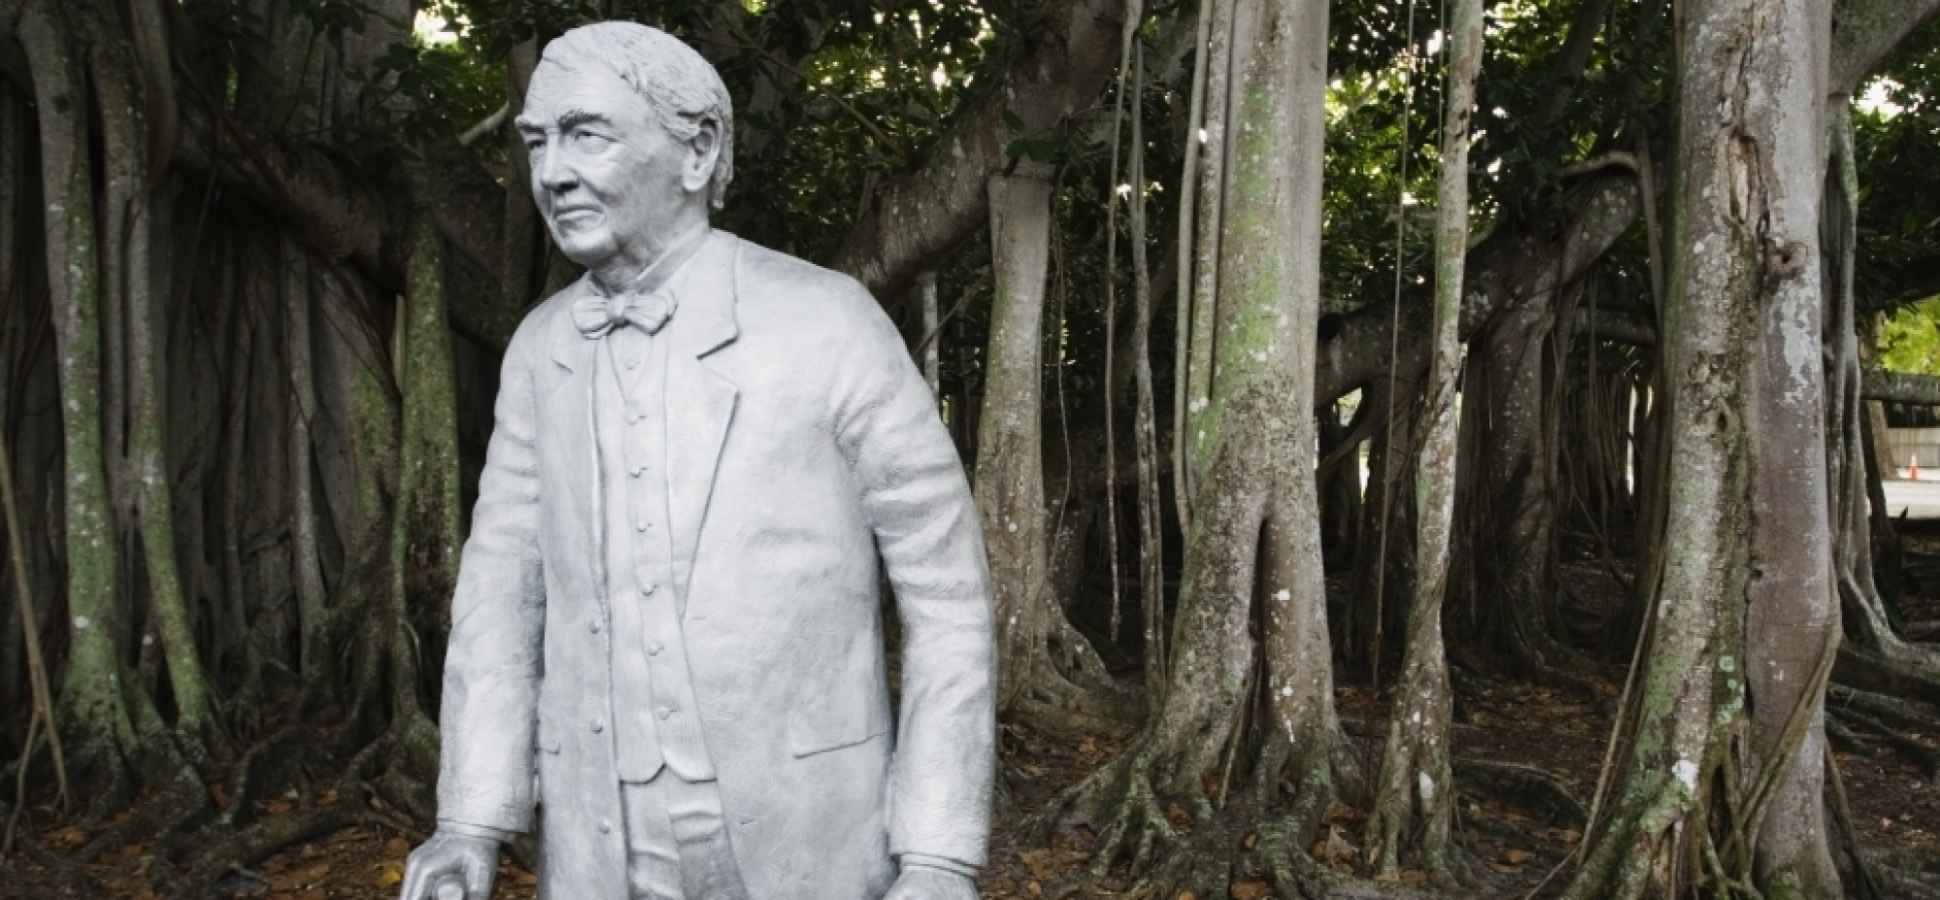 37 Quotes From Thomas Edison That Will Inspire Success | Inc com